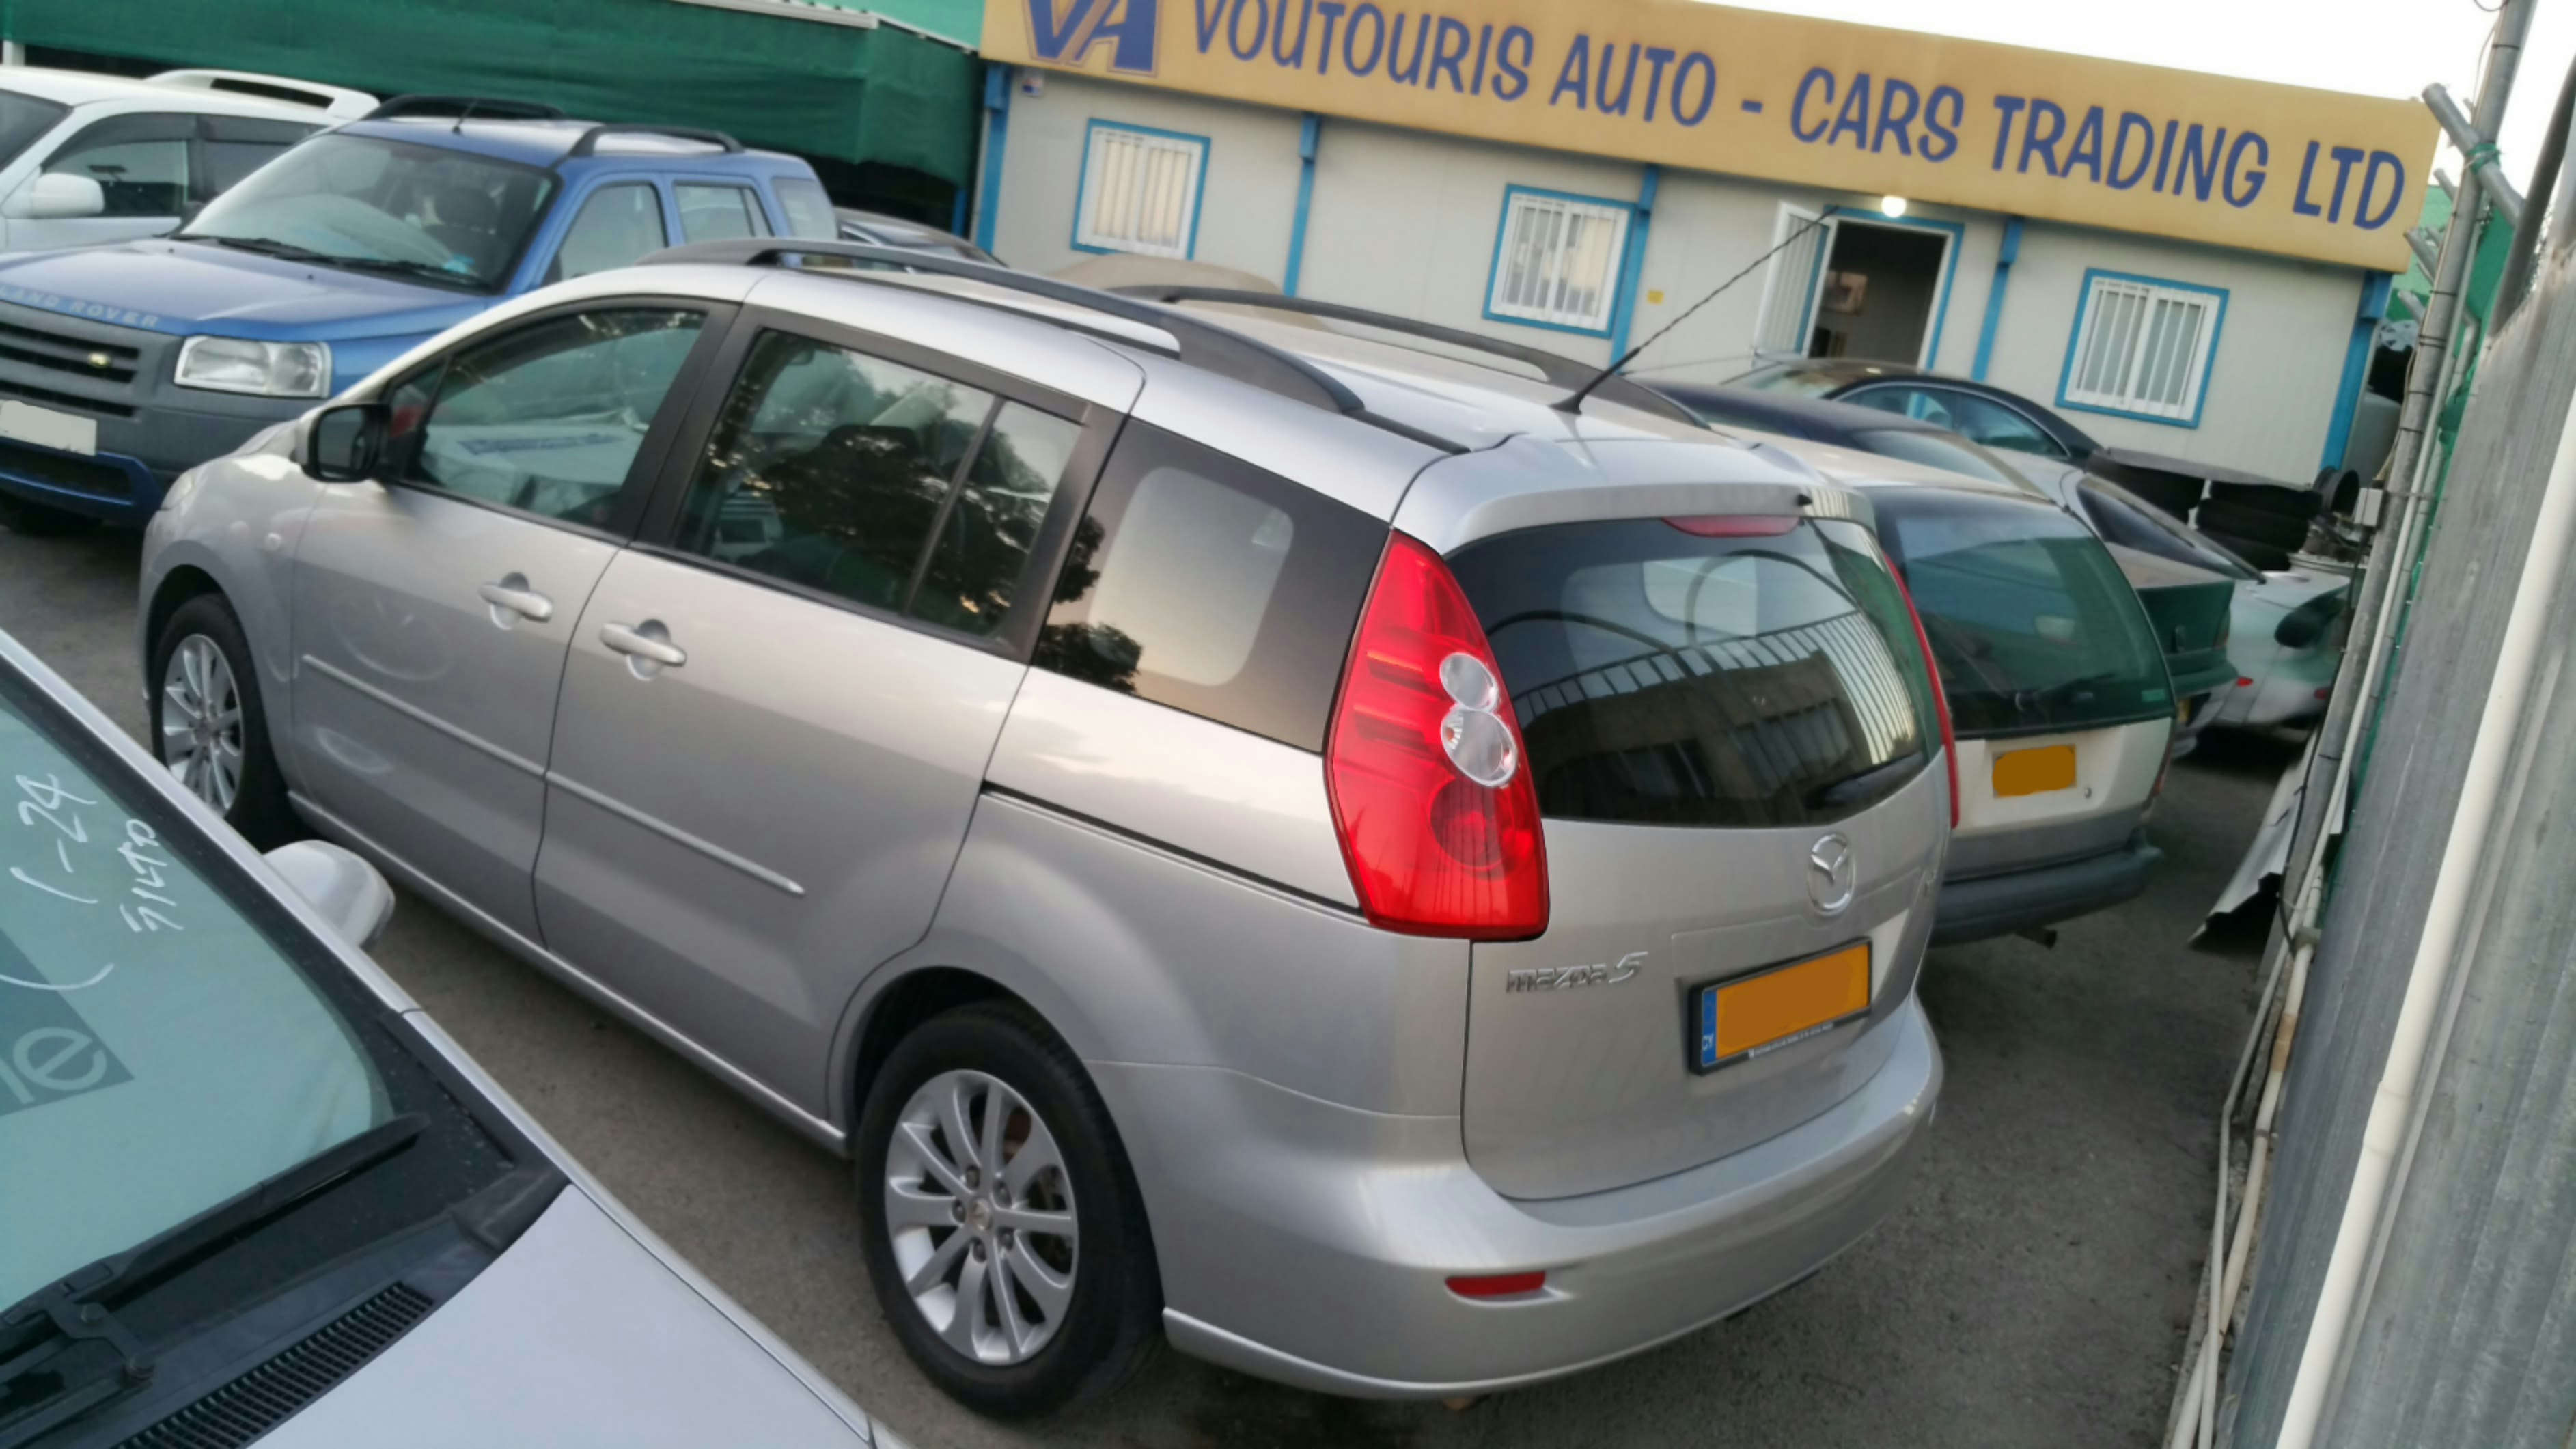 Mazda 5, Voutouris Used Cars Cyprus